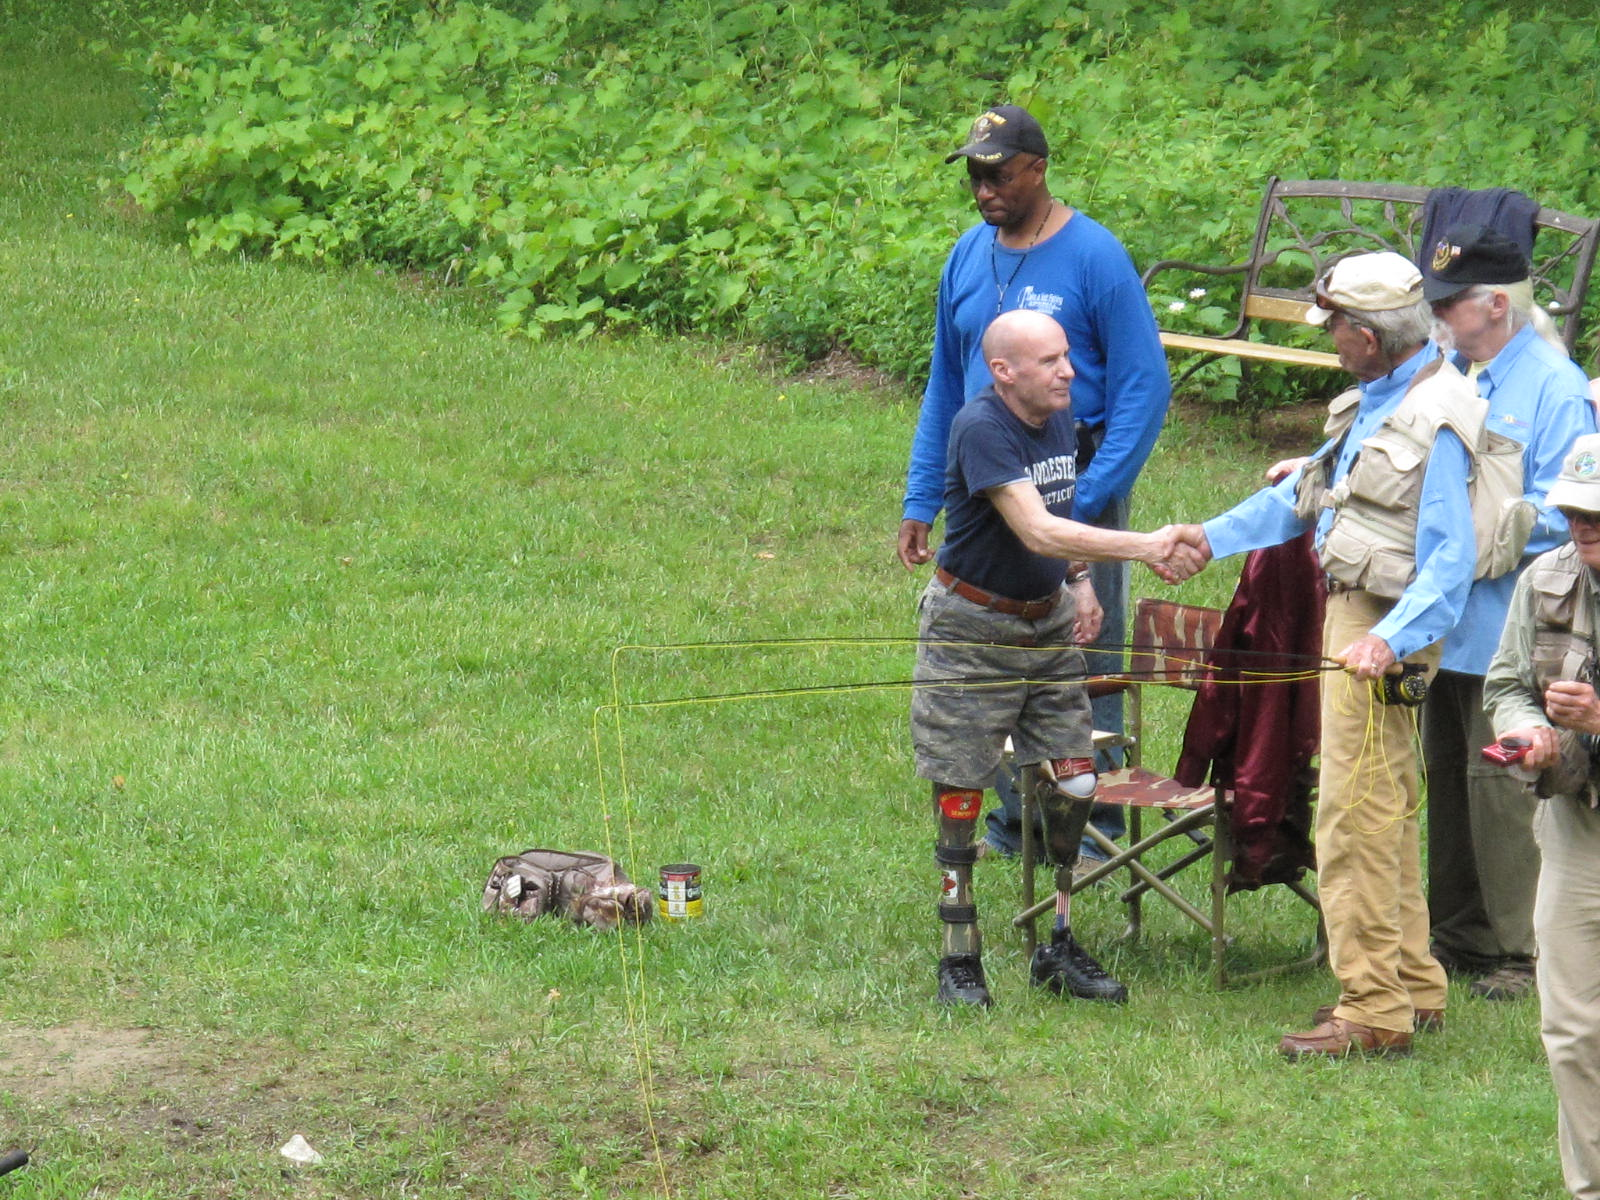 Veterans enjoy memorable outing to the Limestone Trout Club